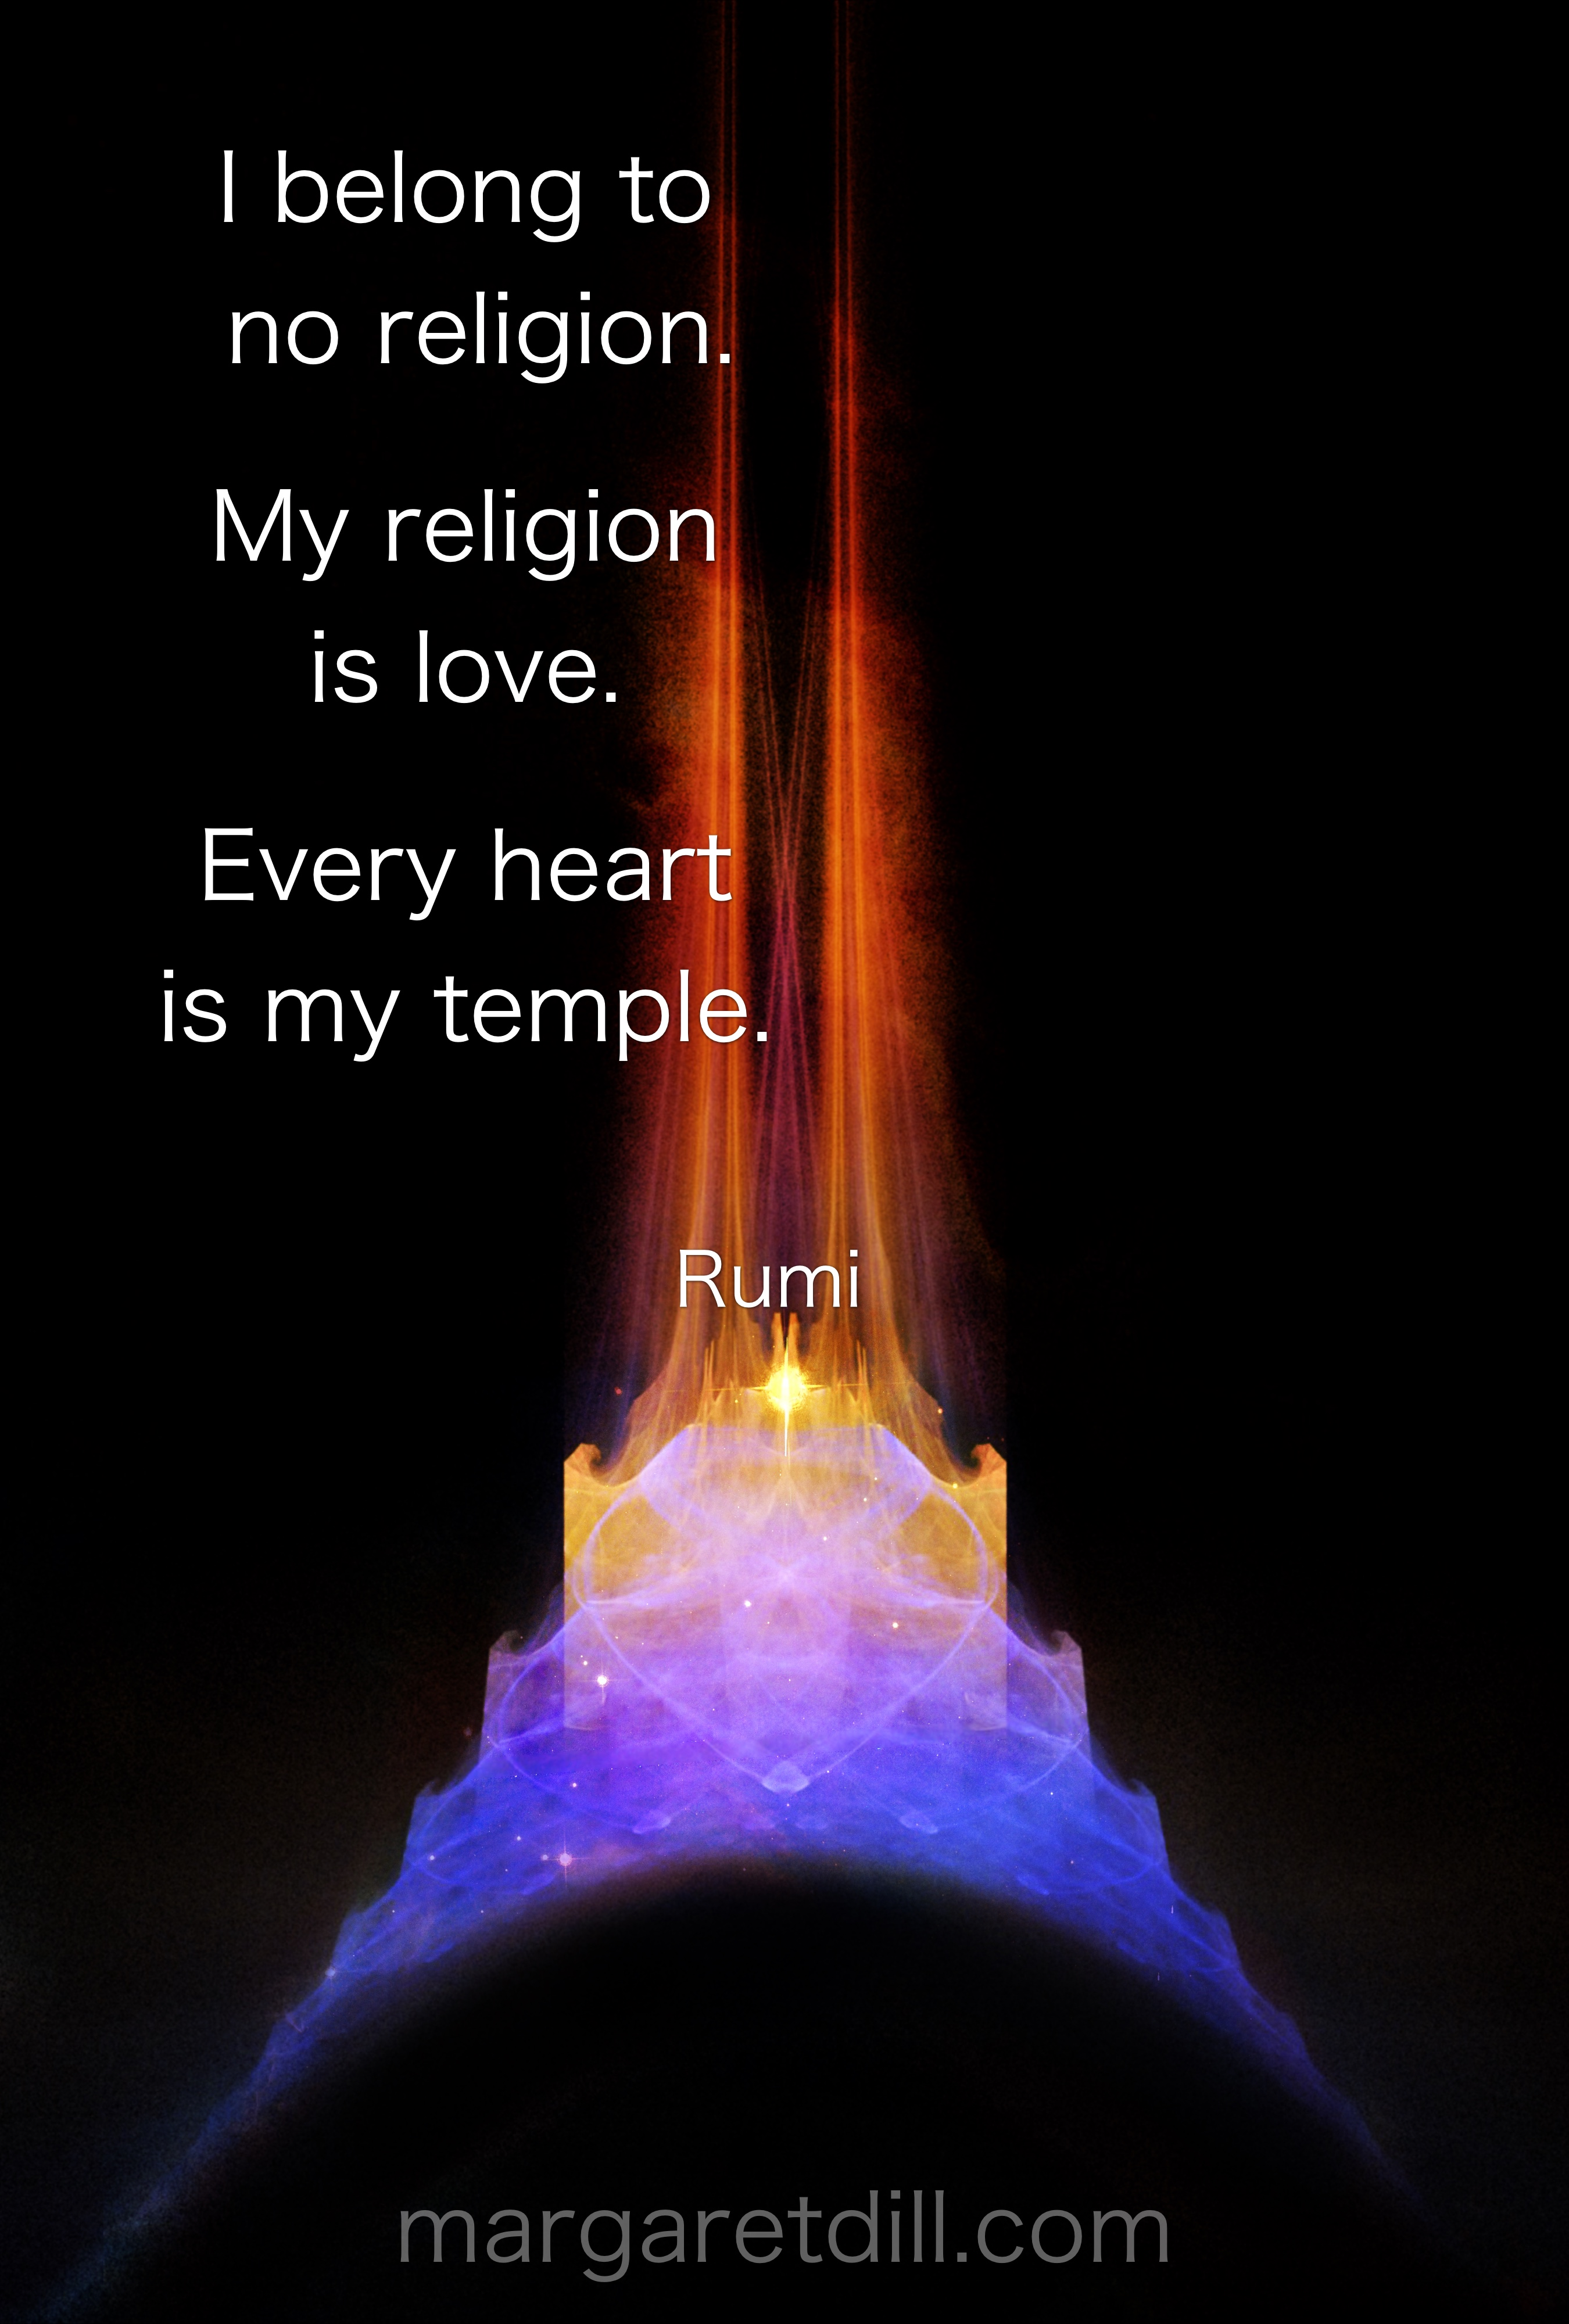 I Belong To No Religion Rumi Quote Margaret Dill Design